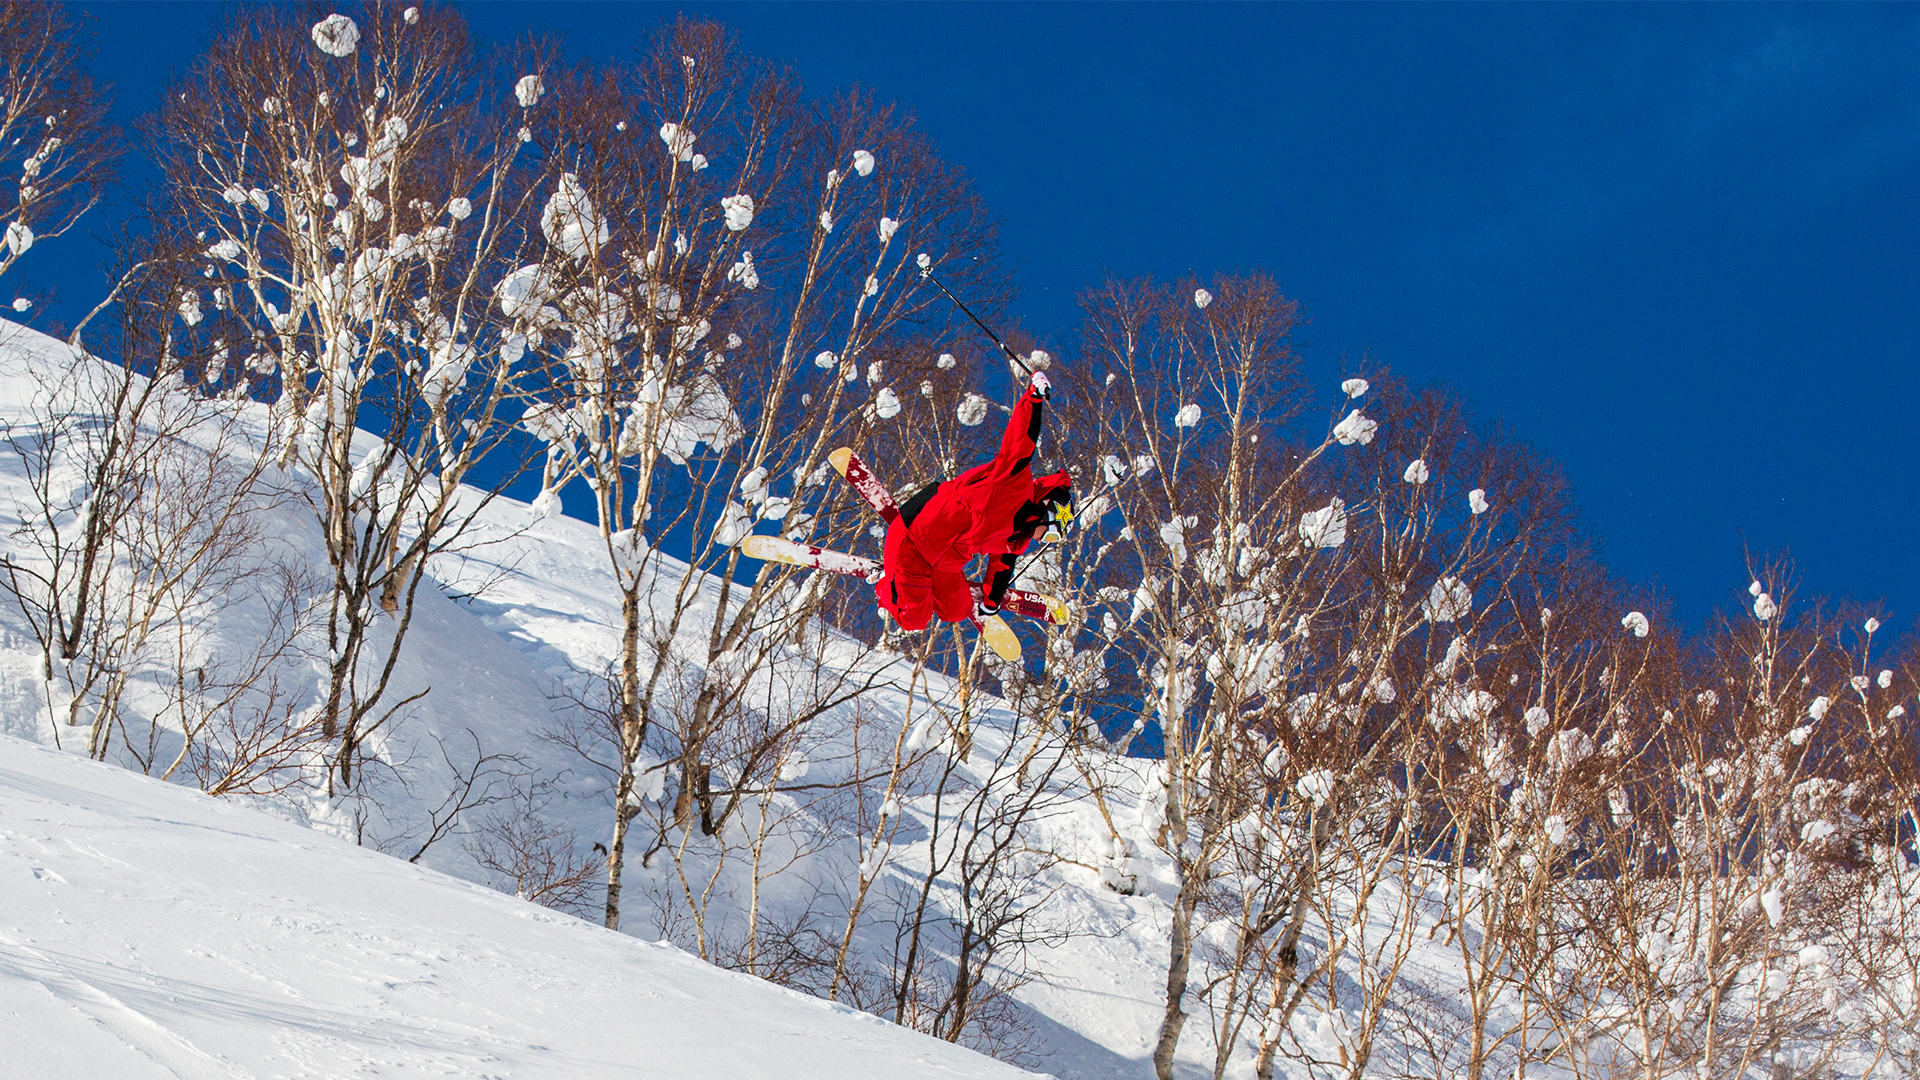 A woman skiing down a mountain slope.